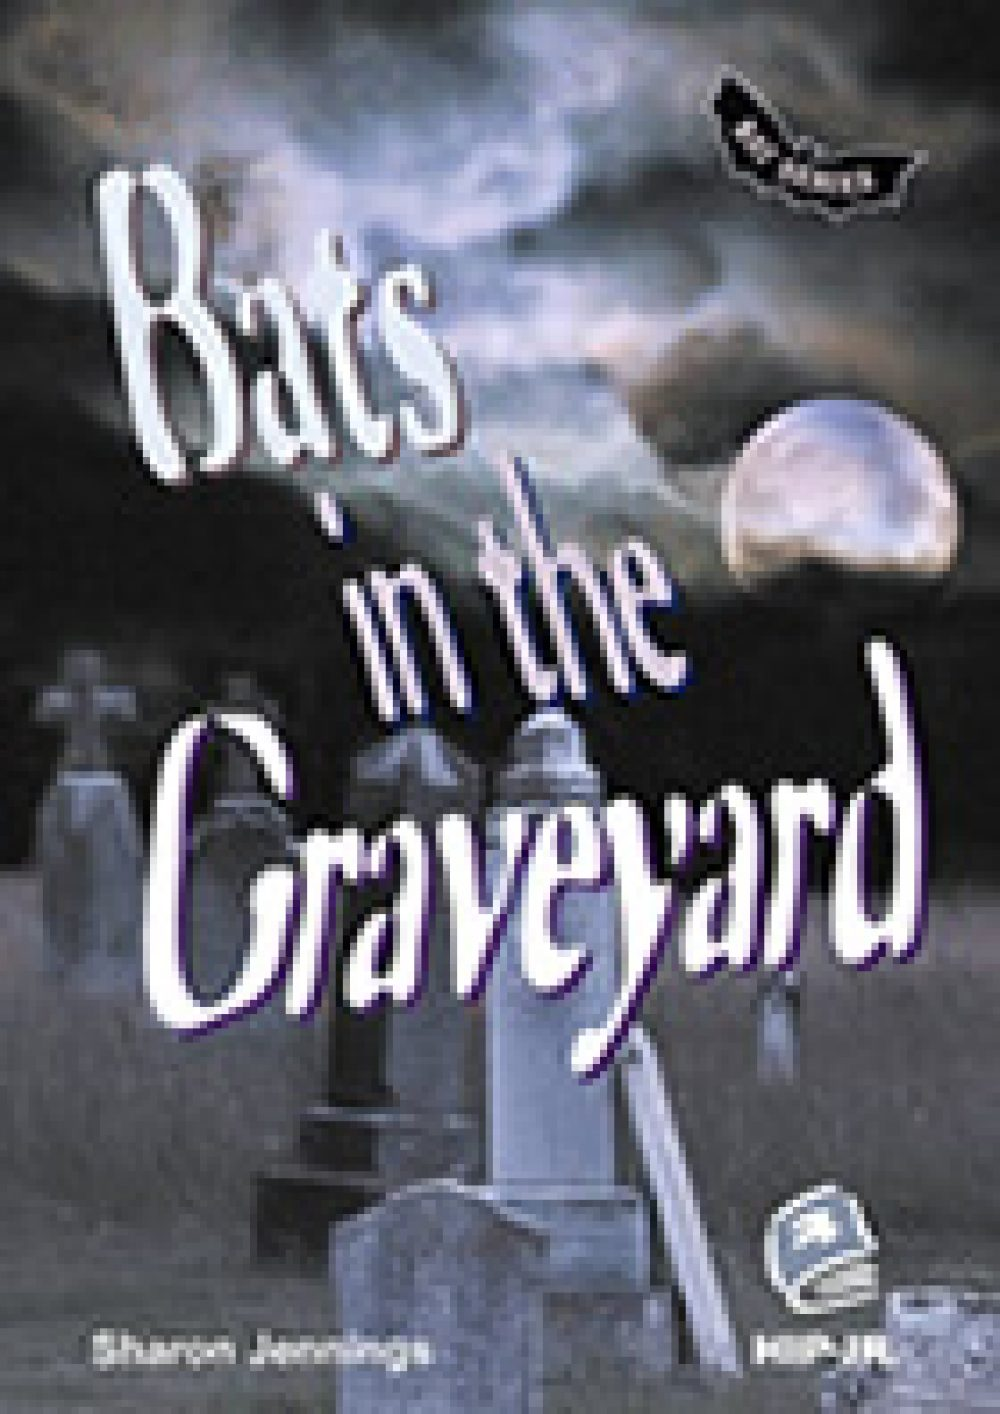 Bats 2: Bats in the Graveyard